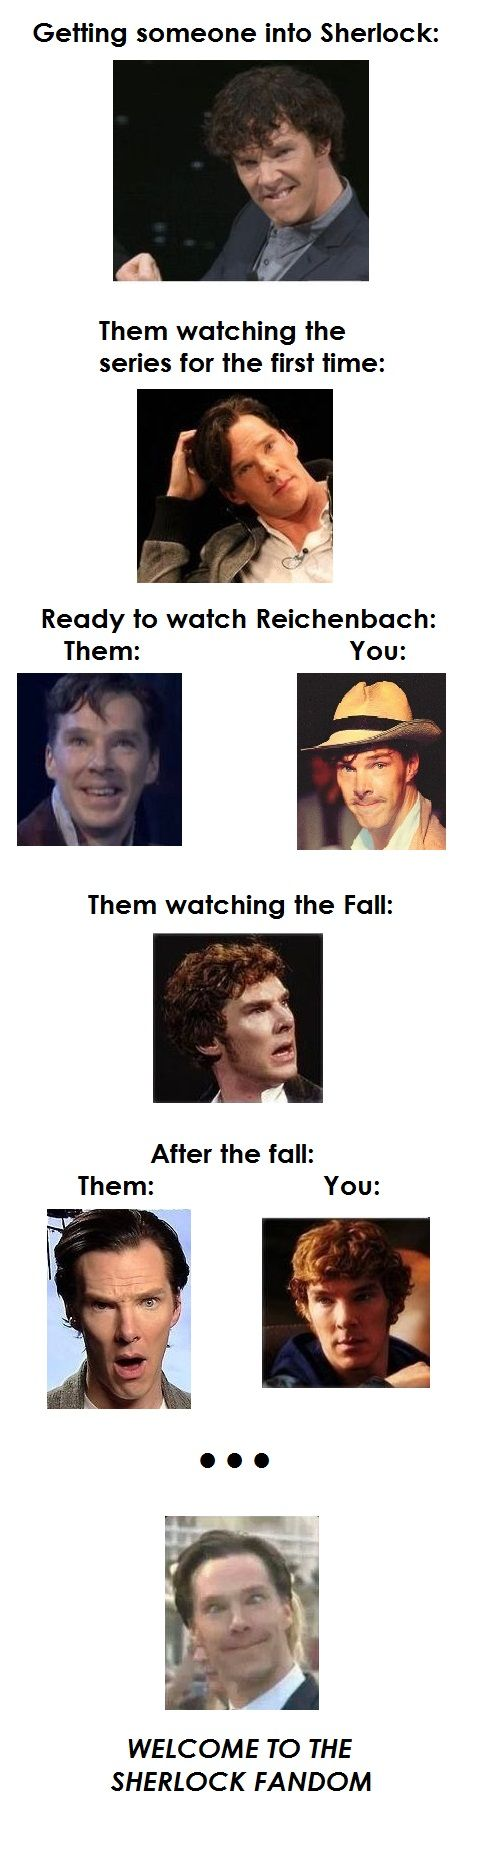 Melinda - The Sherlock fandom as told by Benedict Cumberbatch...this is so accurate.